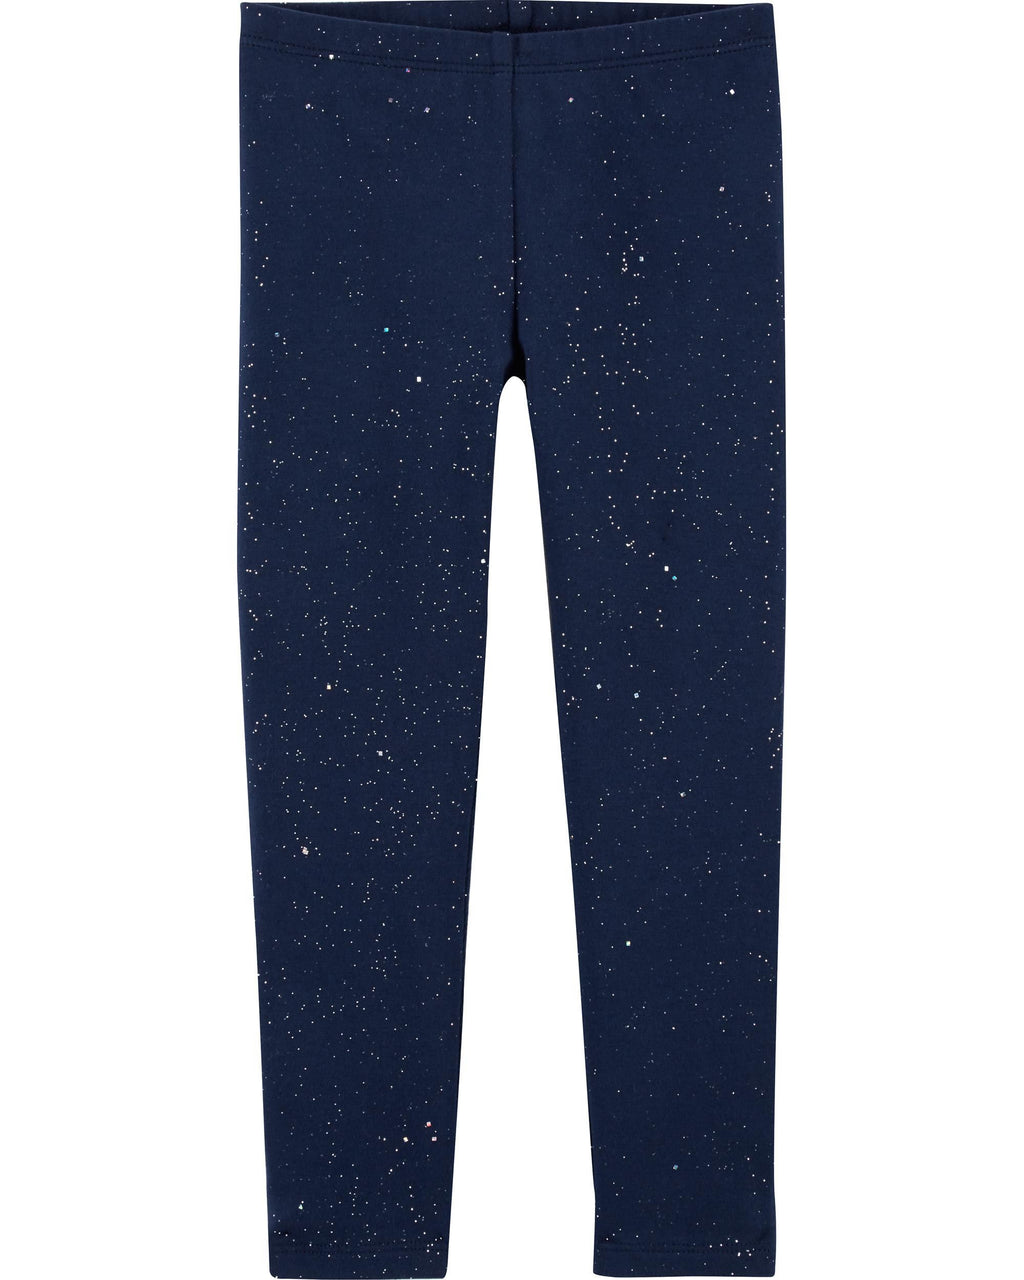 Leggings OSHKOSH Glitter Leggings